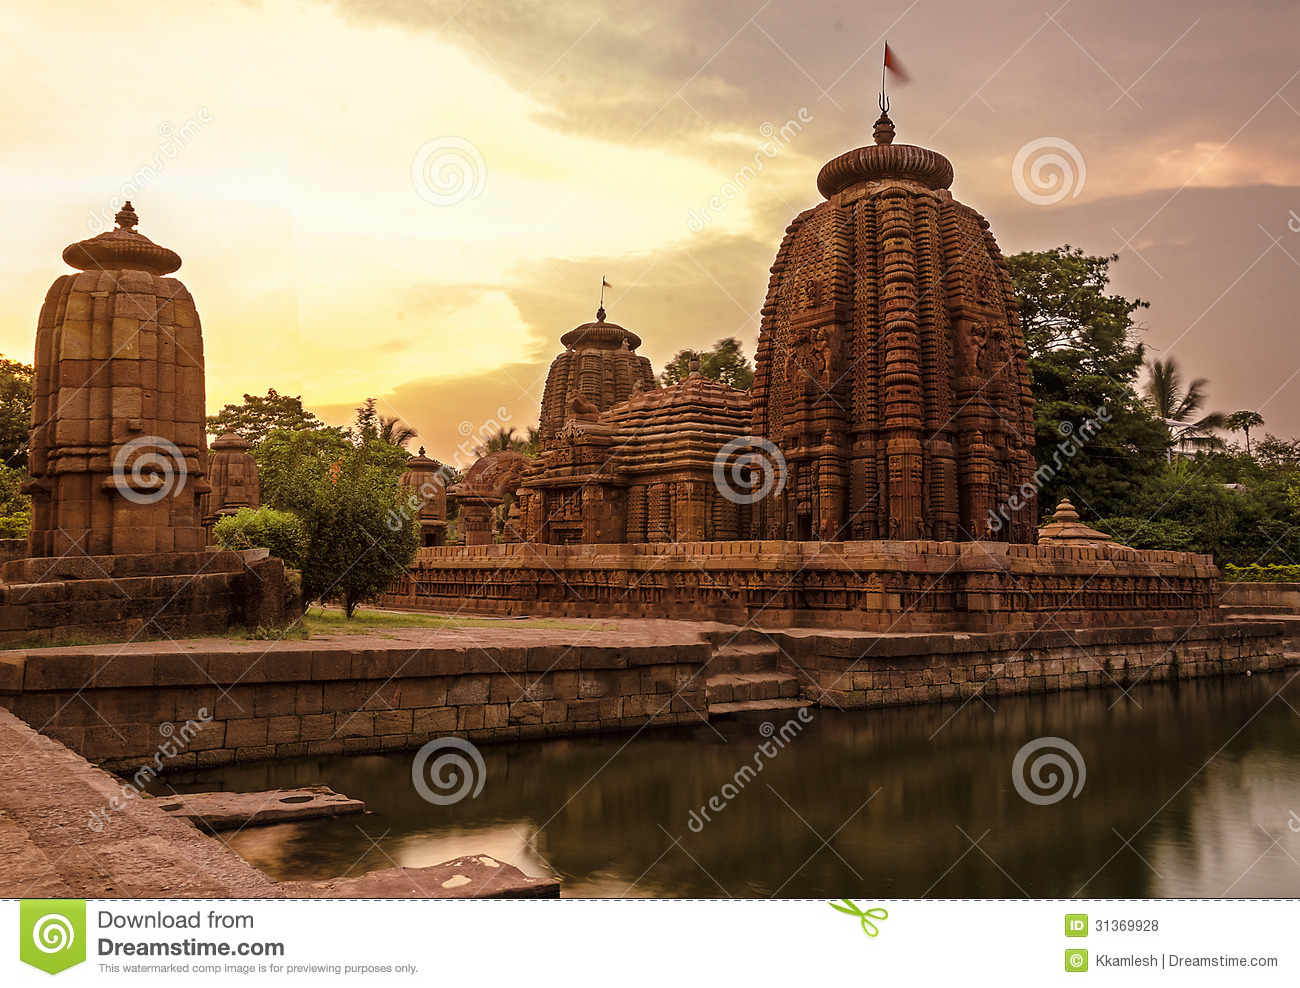 Animation Hd Wallpapers 1080p Ancient Indian Temple Royalty Free Stock Photos Image